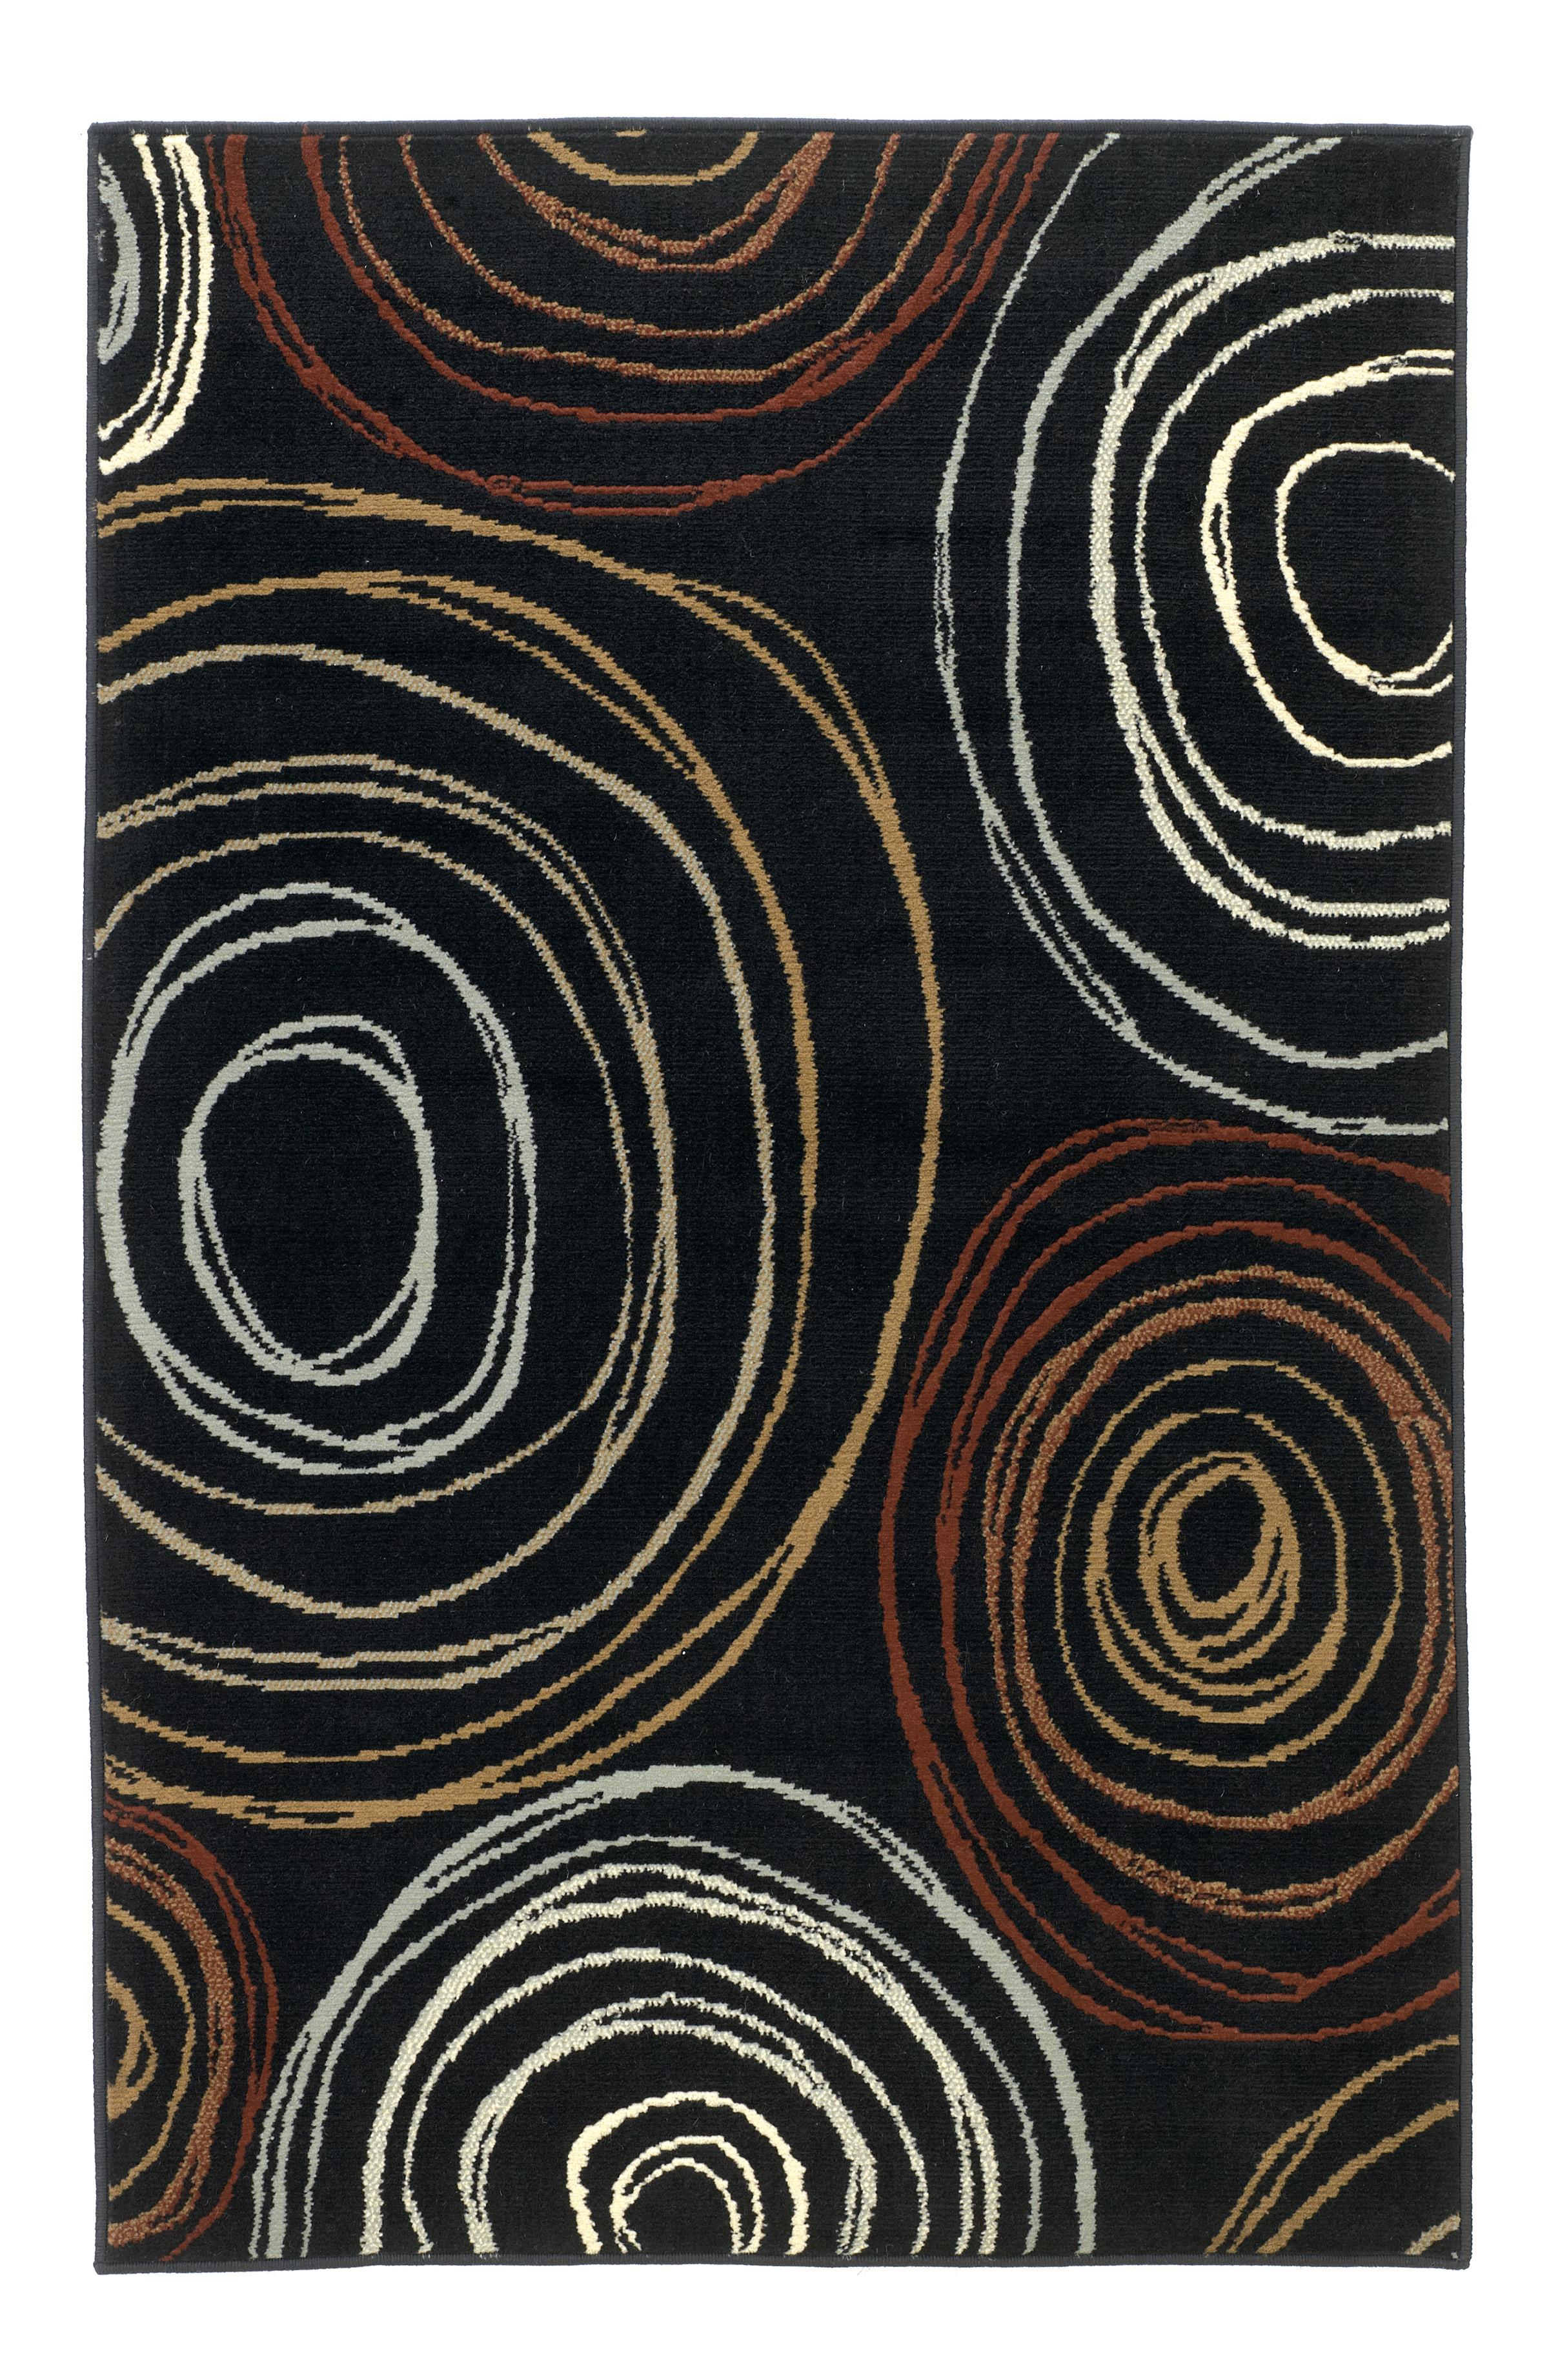 Signature Design by Ashley Contemporary Area Rugs Suri - Salsa Rug - Item Number: R275002